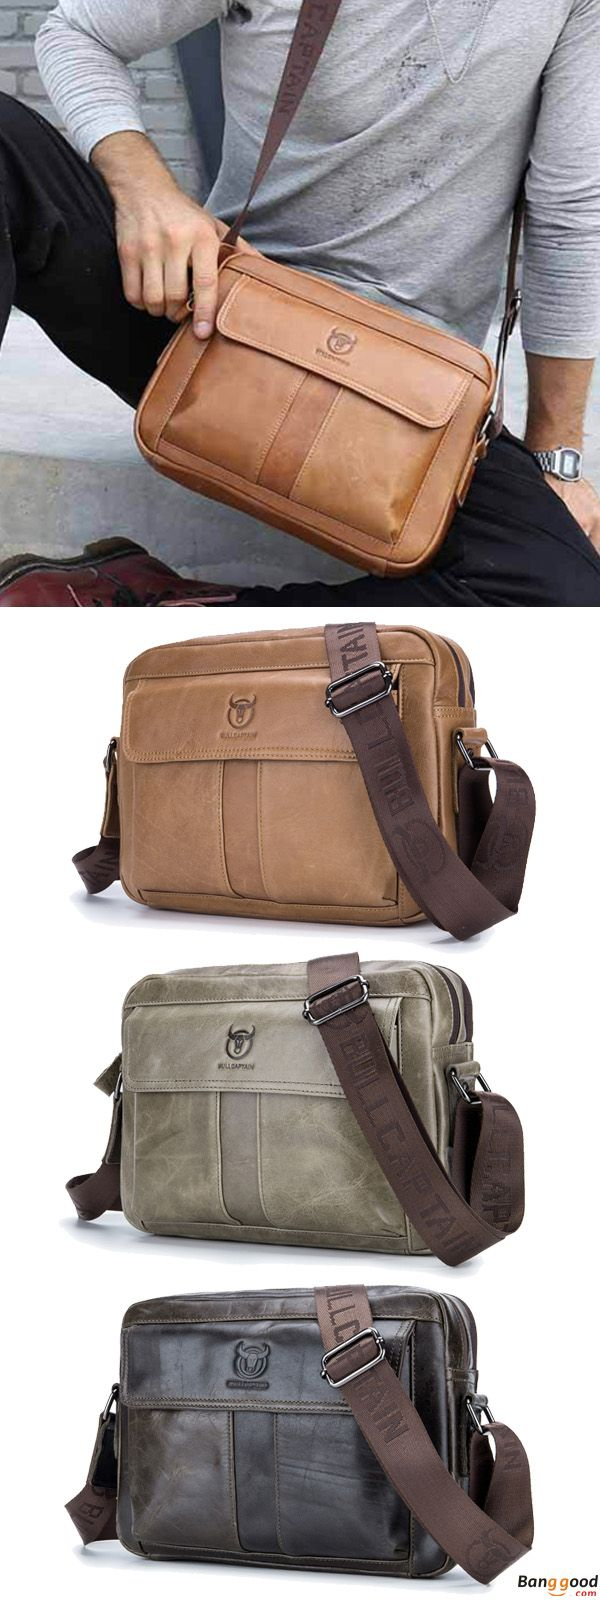 US$49.5 + Free Shipping. Men Genuine Leather Crossbody Shoulder Bag Business Messenger Bag Coffee Brown. Material: Genuine Leather. Colors: Brown, Coffee, Grey. Shop to Get This Precious Baby.